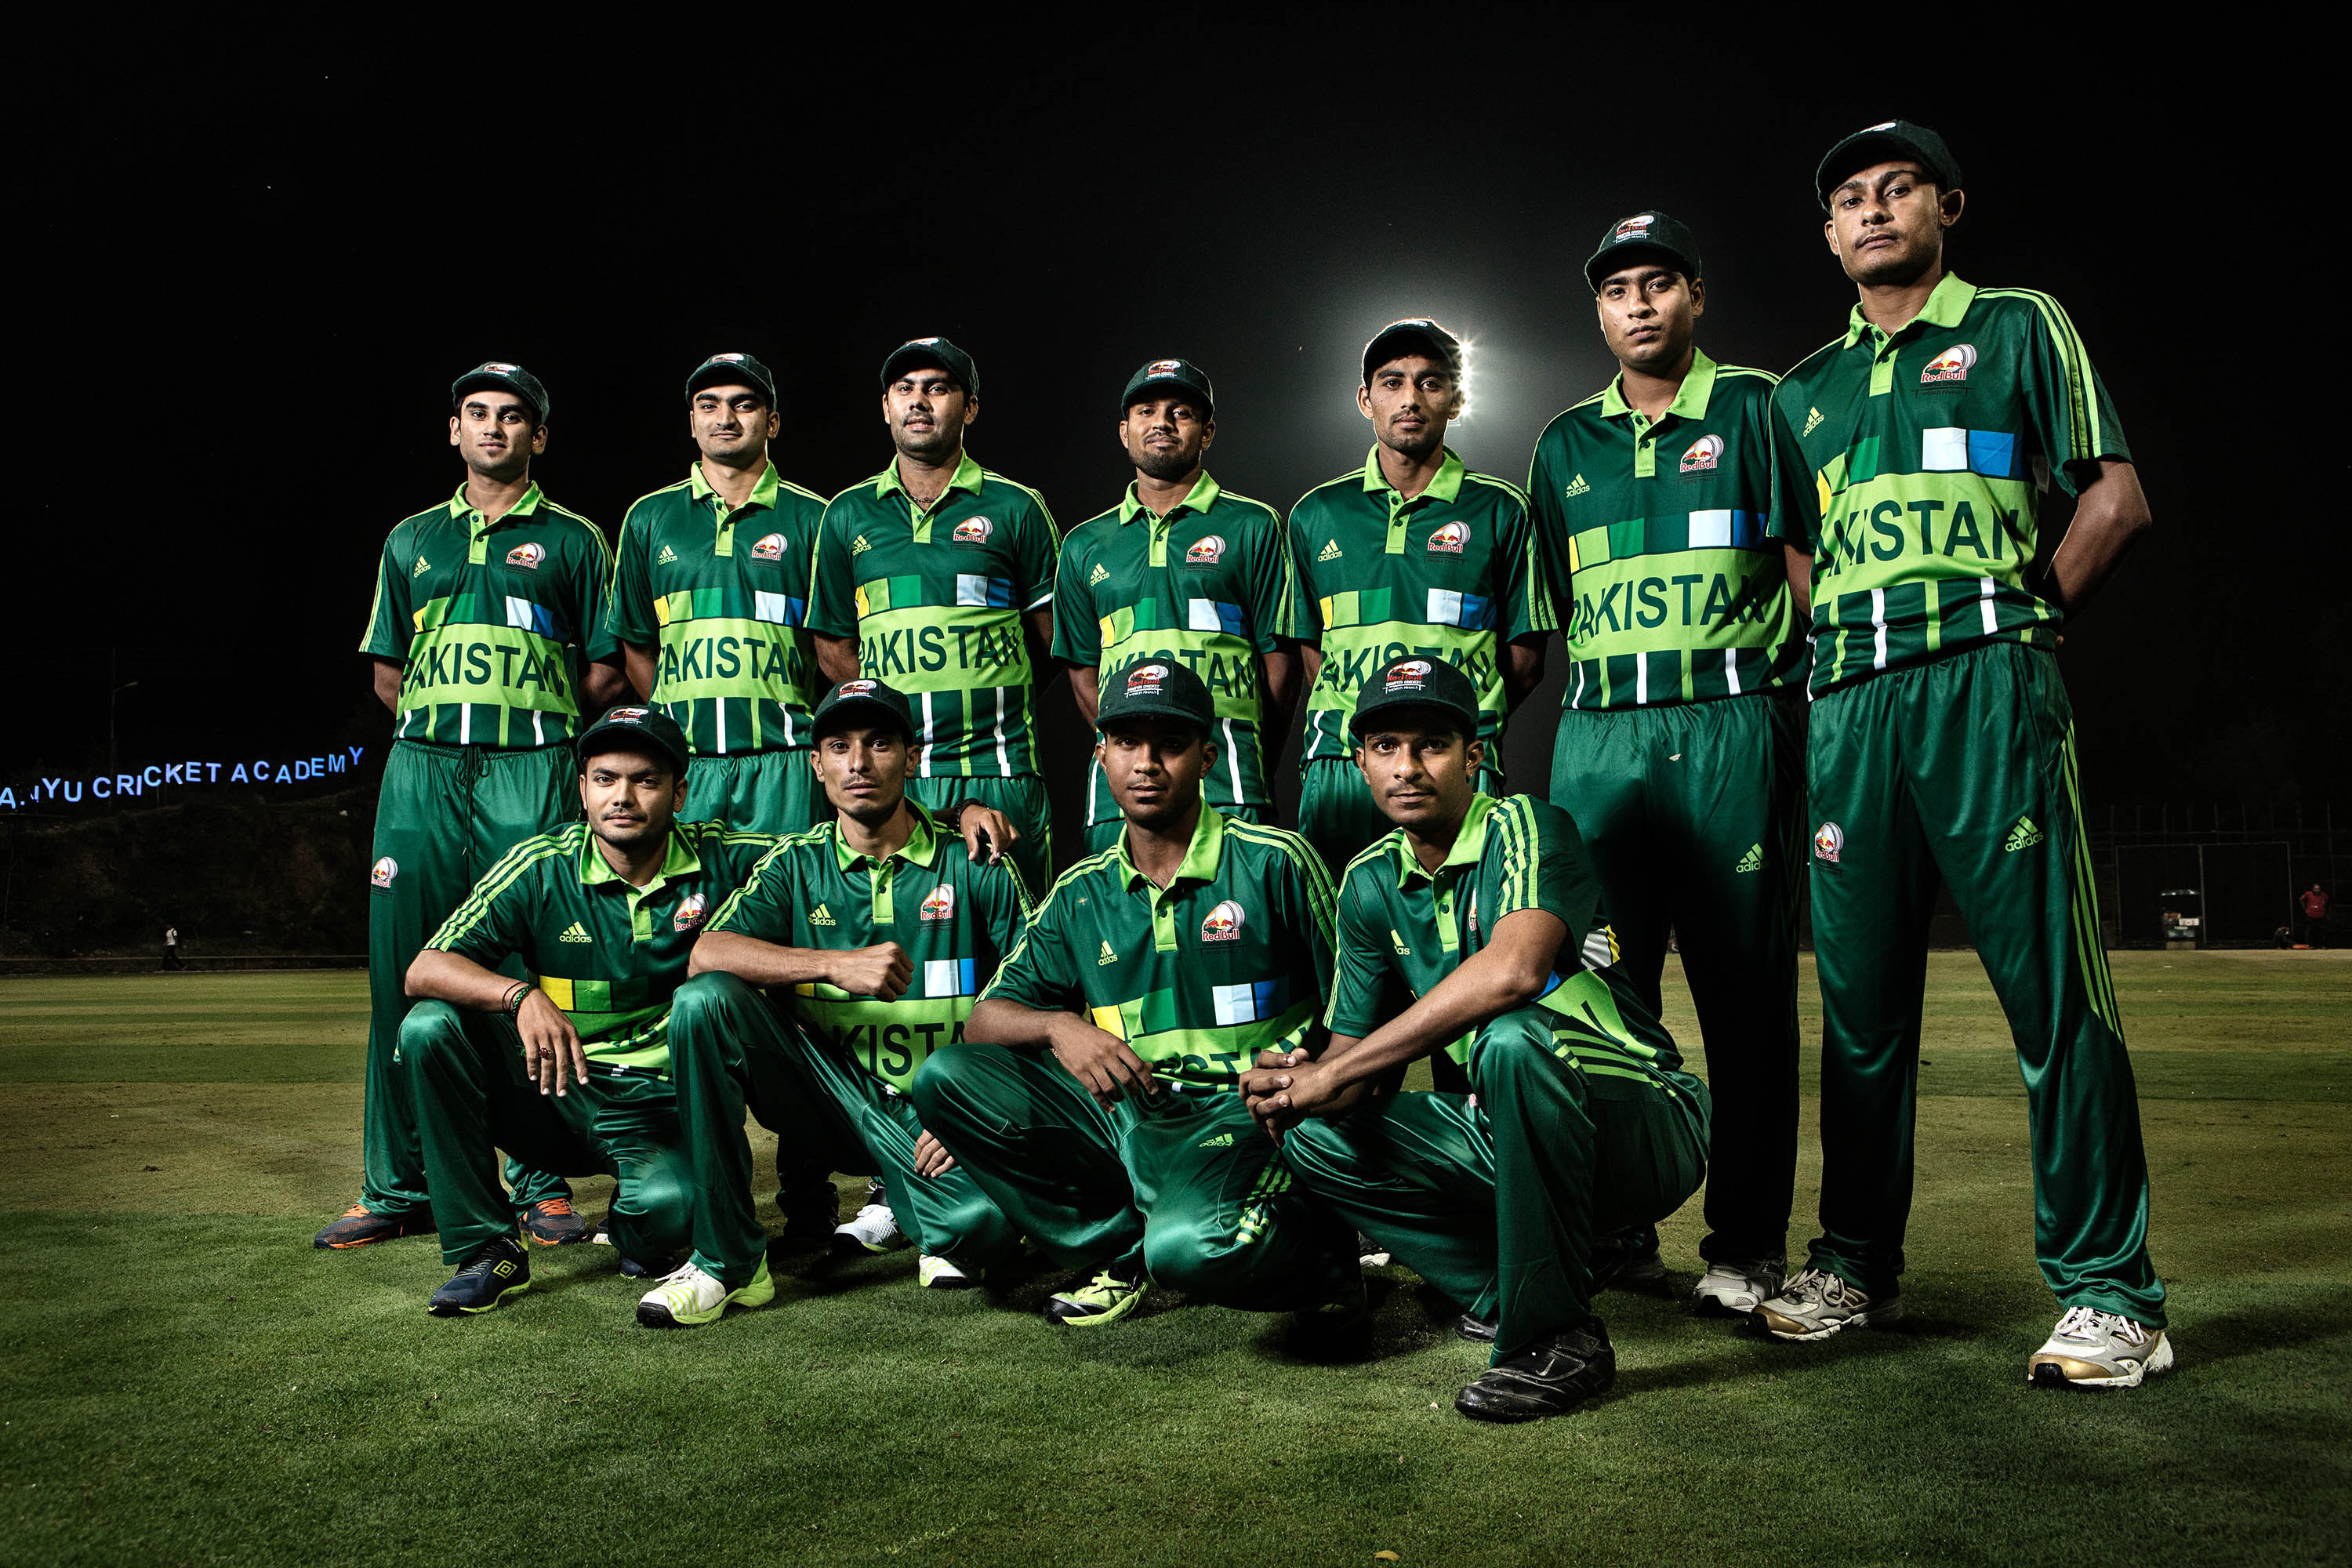 essay on indian cricket team A cricket match essay on  a cricket  pakistan india cricket match points: cricket is an interesting out door game  and the indian team took the field.